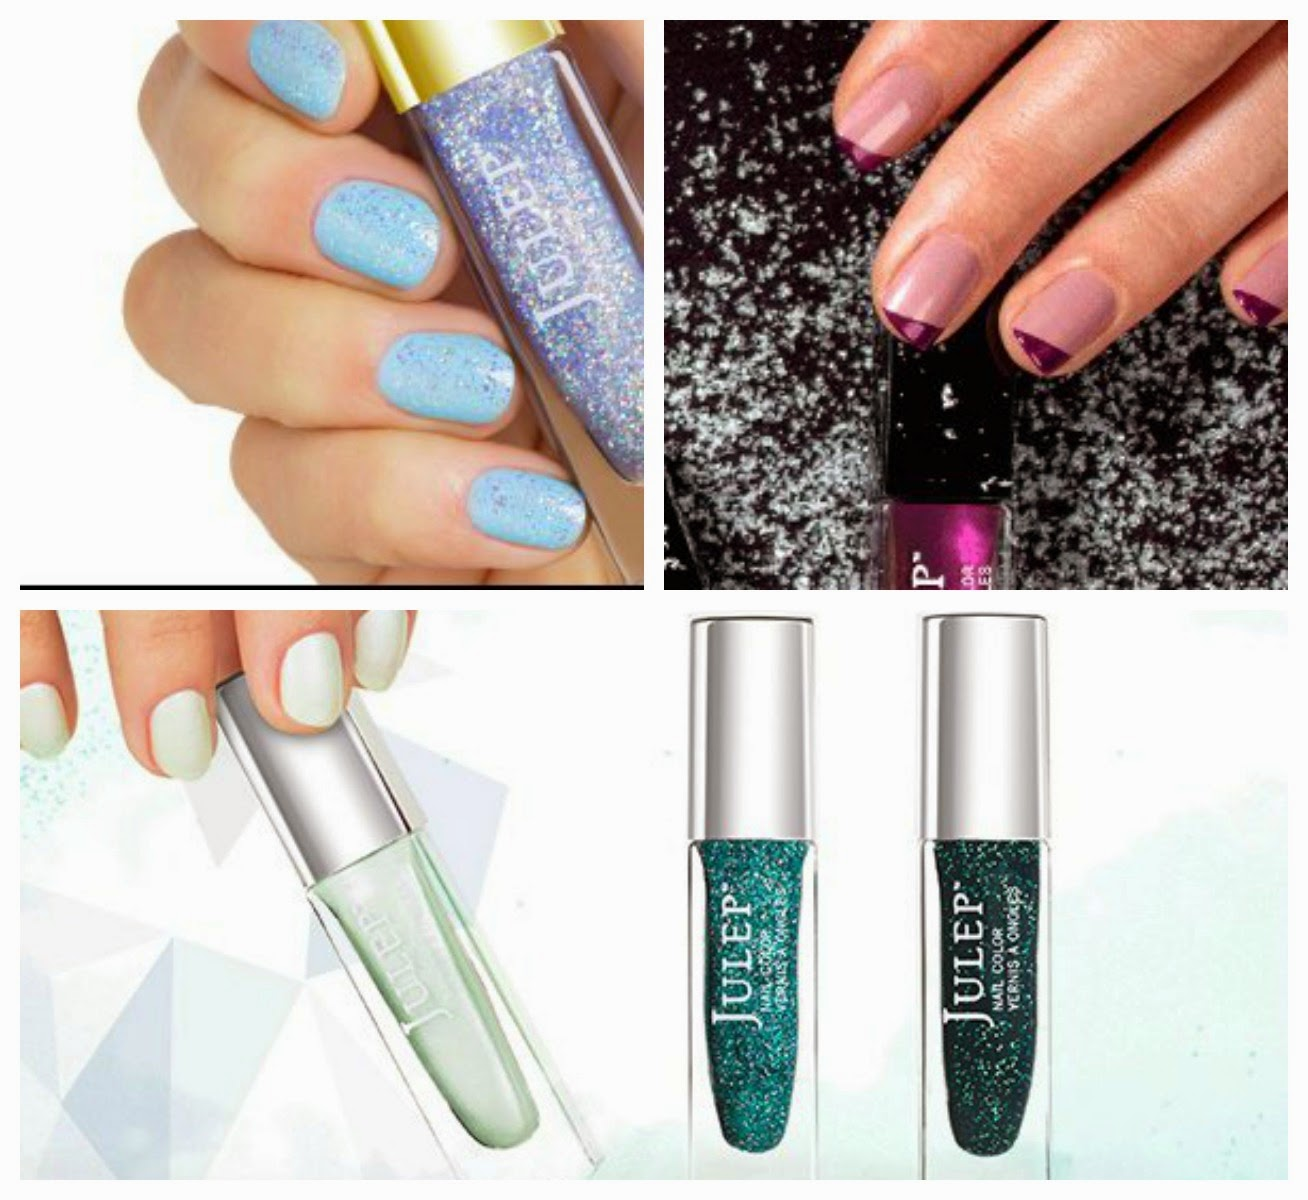 18 Nail Polishes For Christmas and New Year Parties